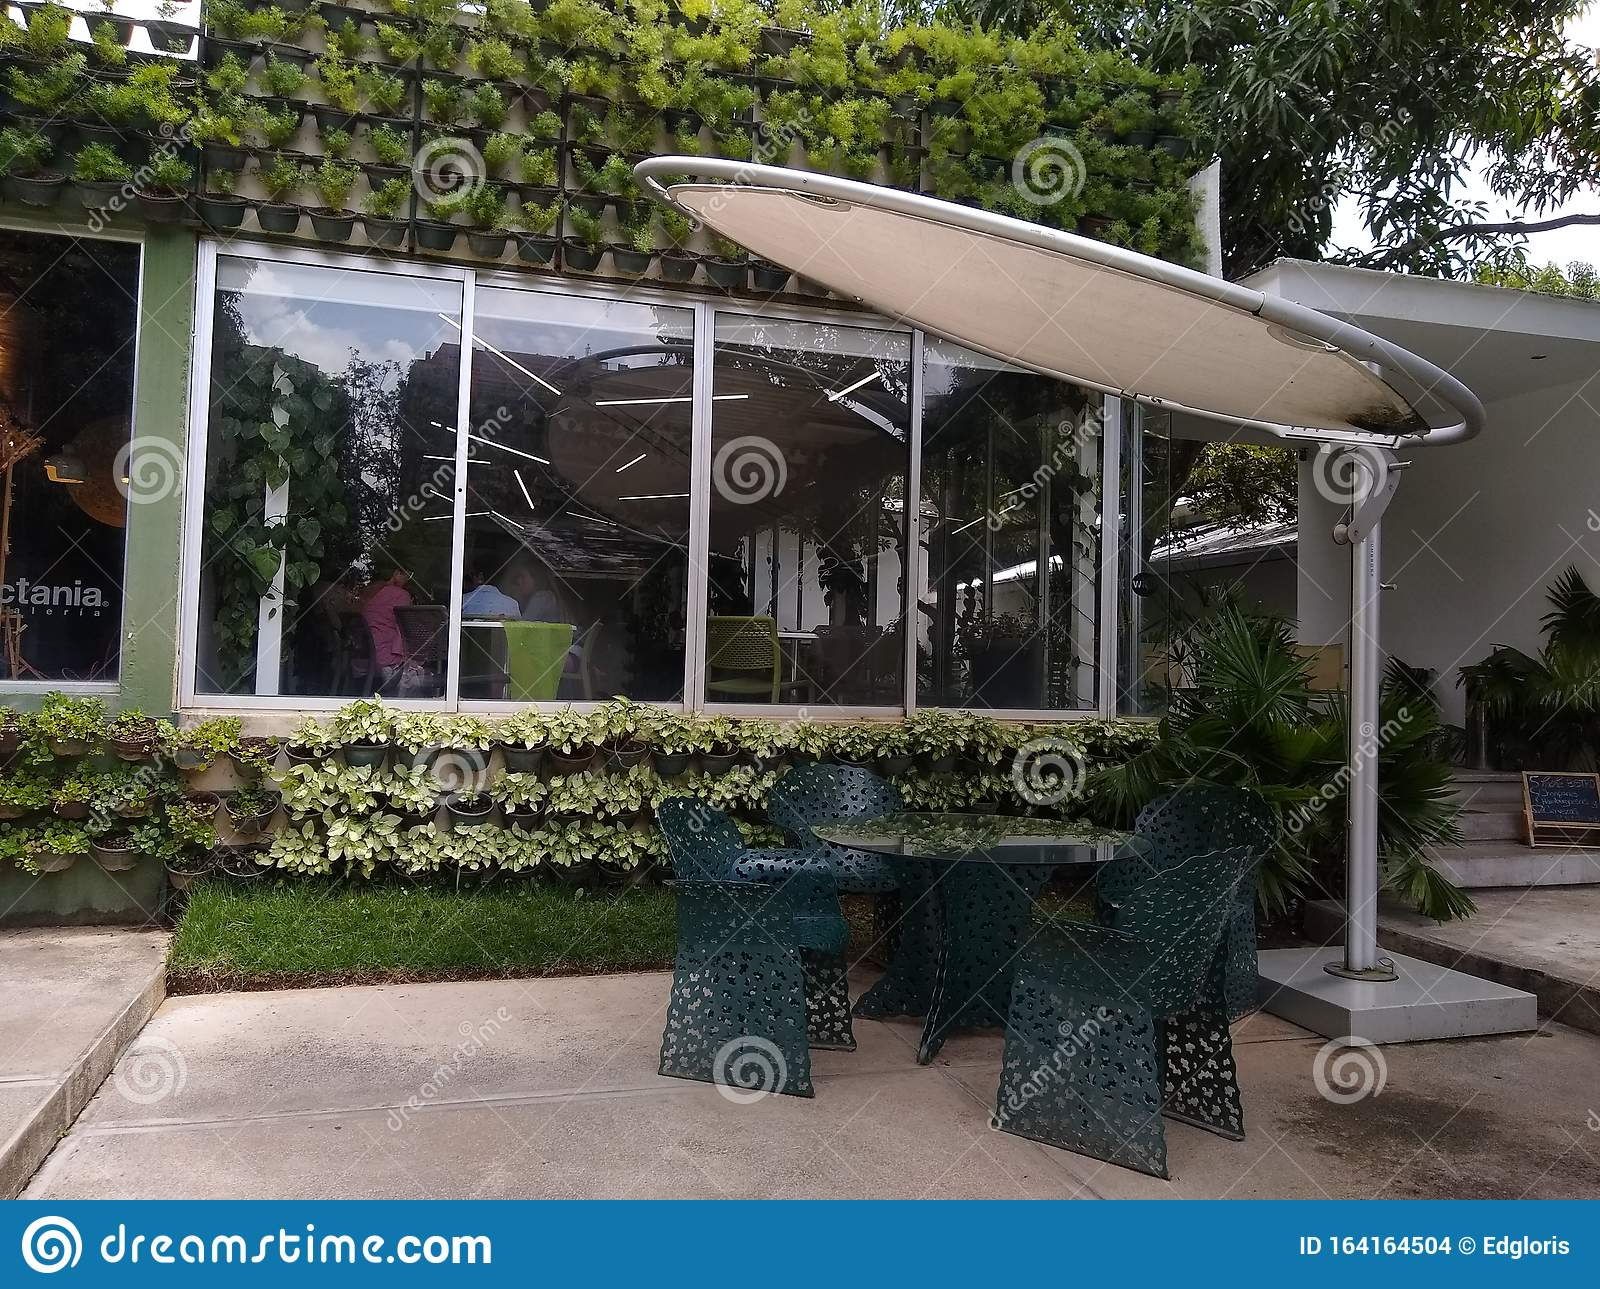 Wall Covered In Vegetation Outside Restaurant Green Concept Climate Friendly Editorial Stock Image Image Of Exterior Climate 164164504